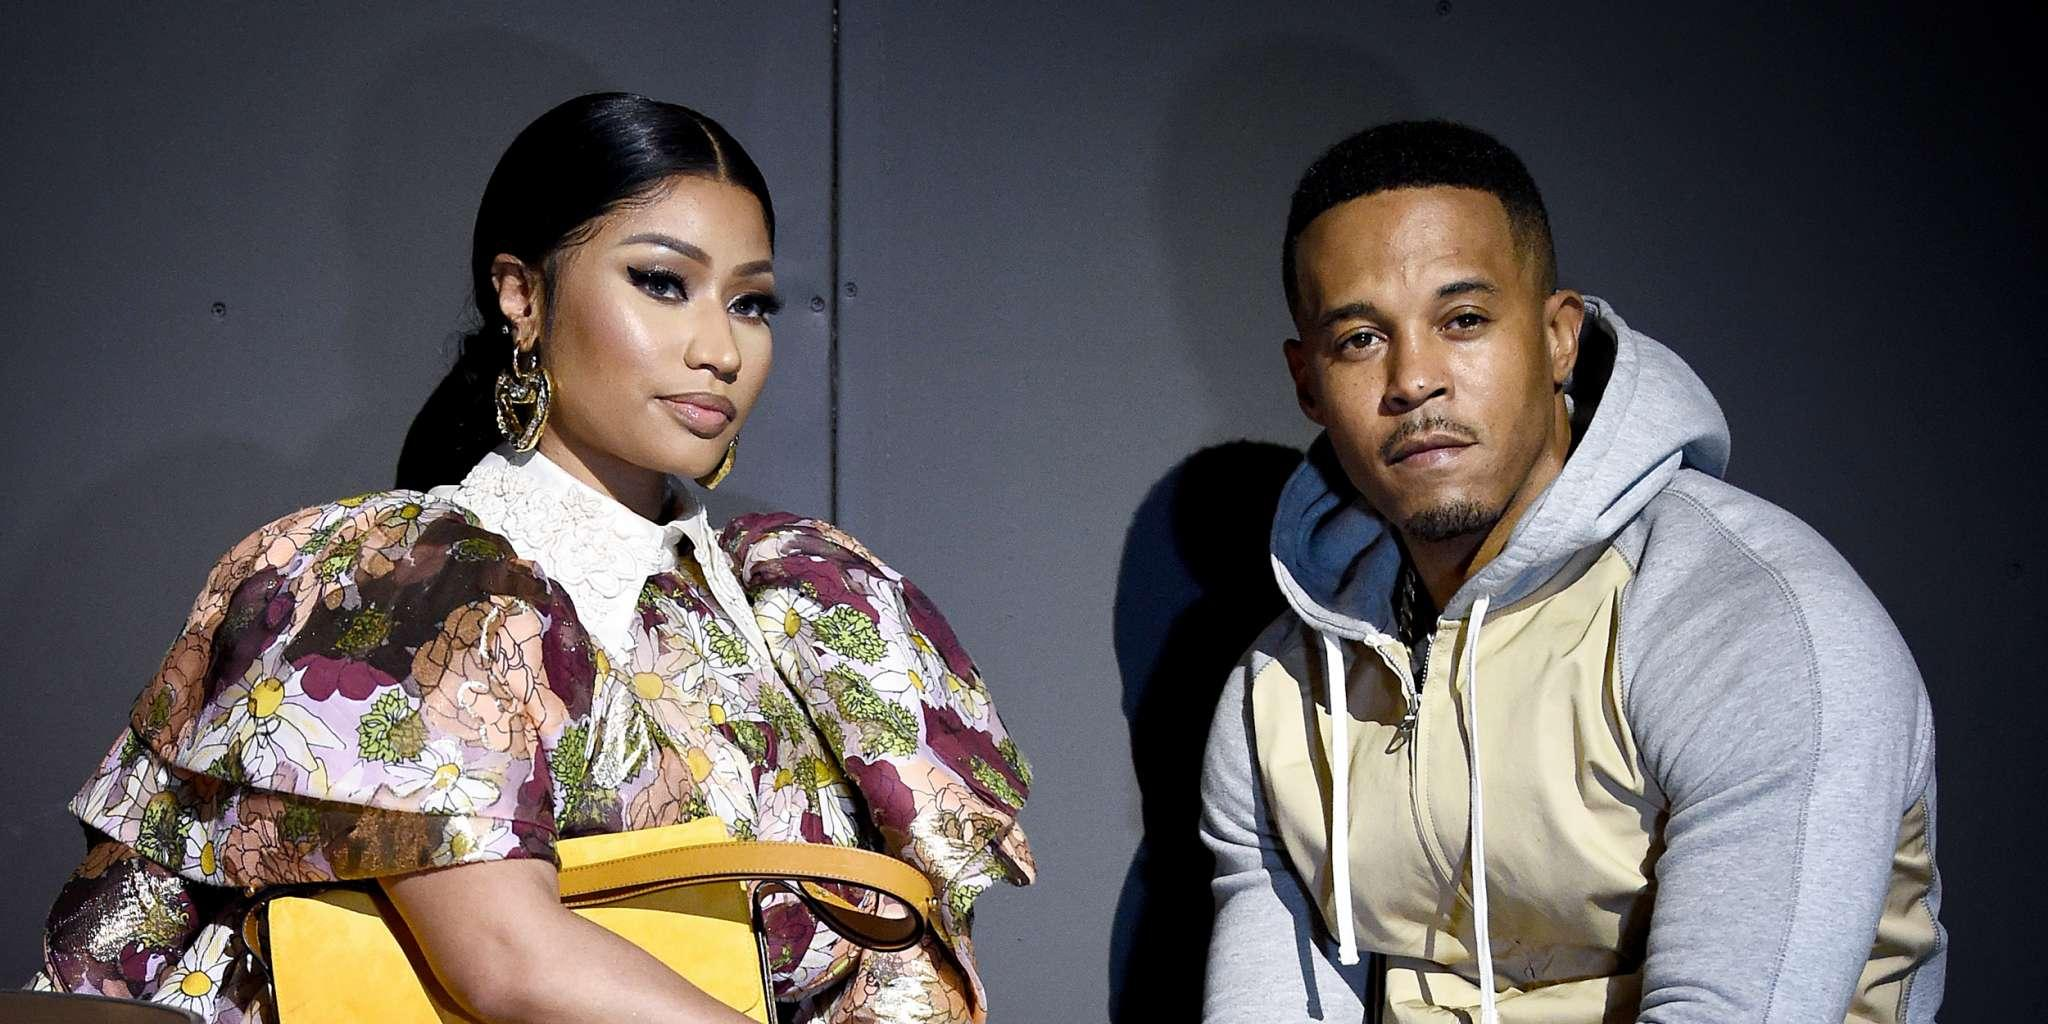 Nicki Minaj's Family Video Will Make Your Day - Check Out The Sweet Clip Here